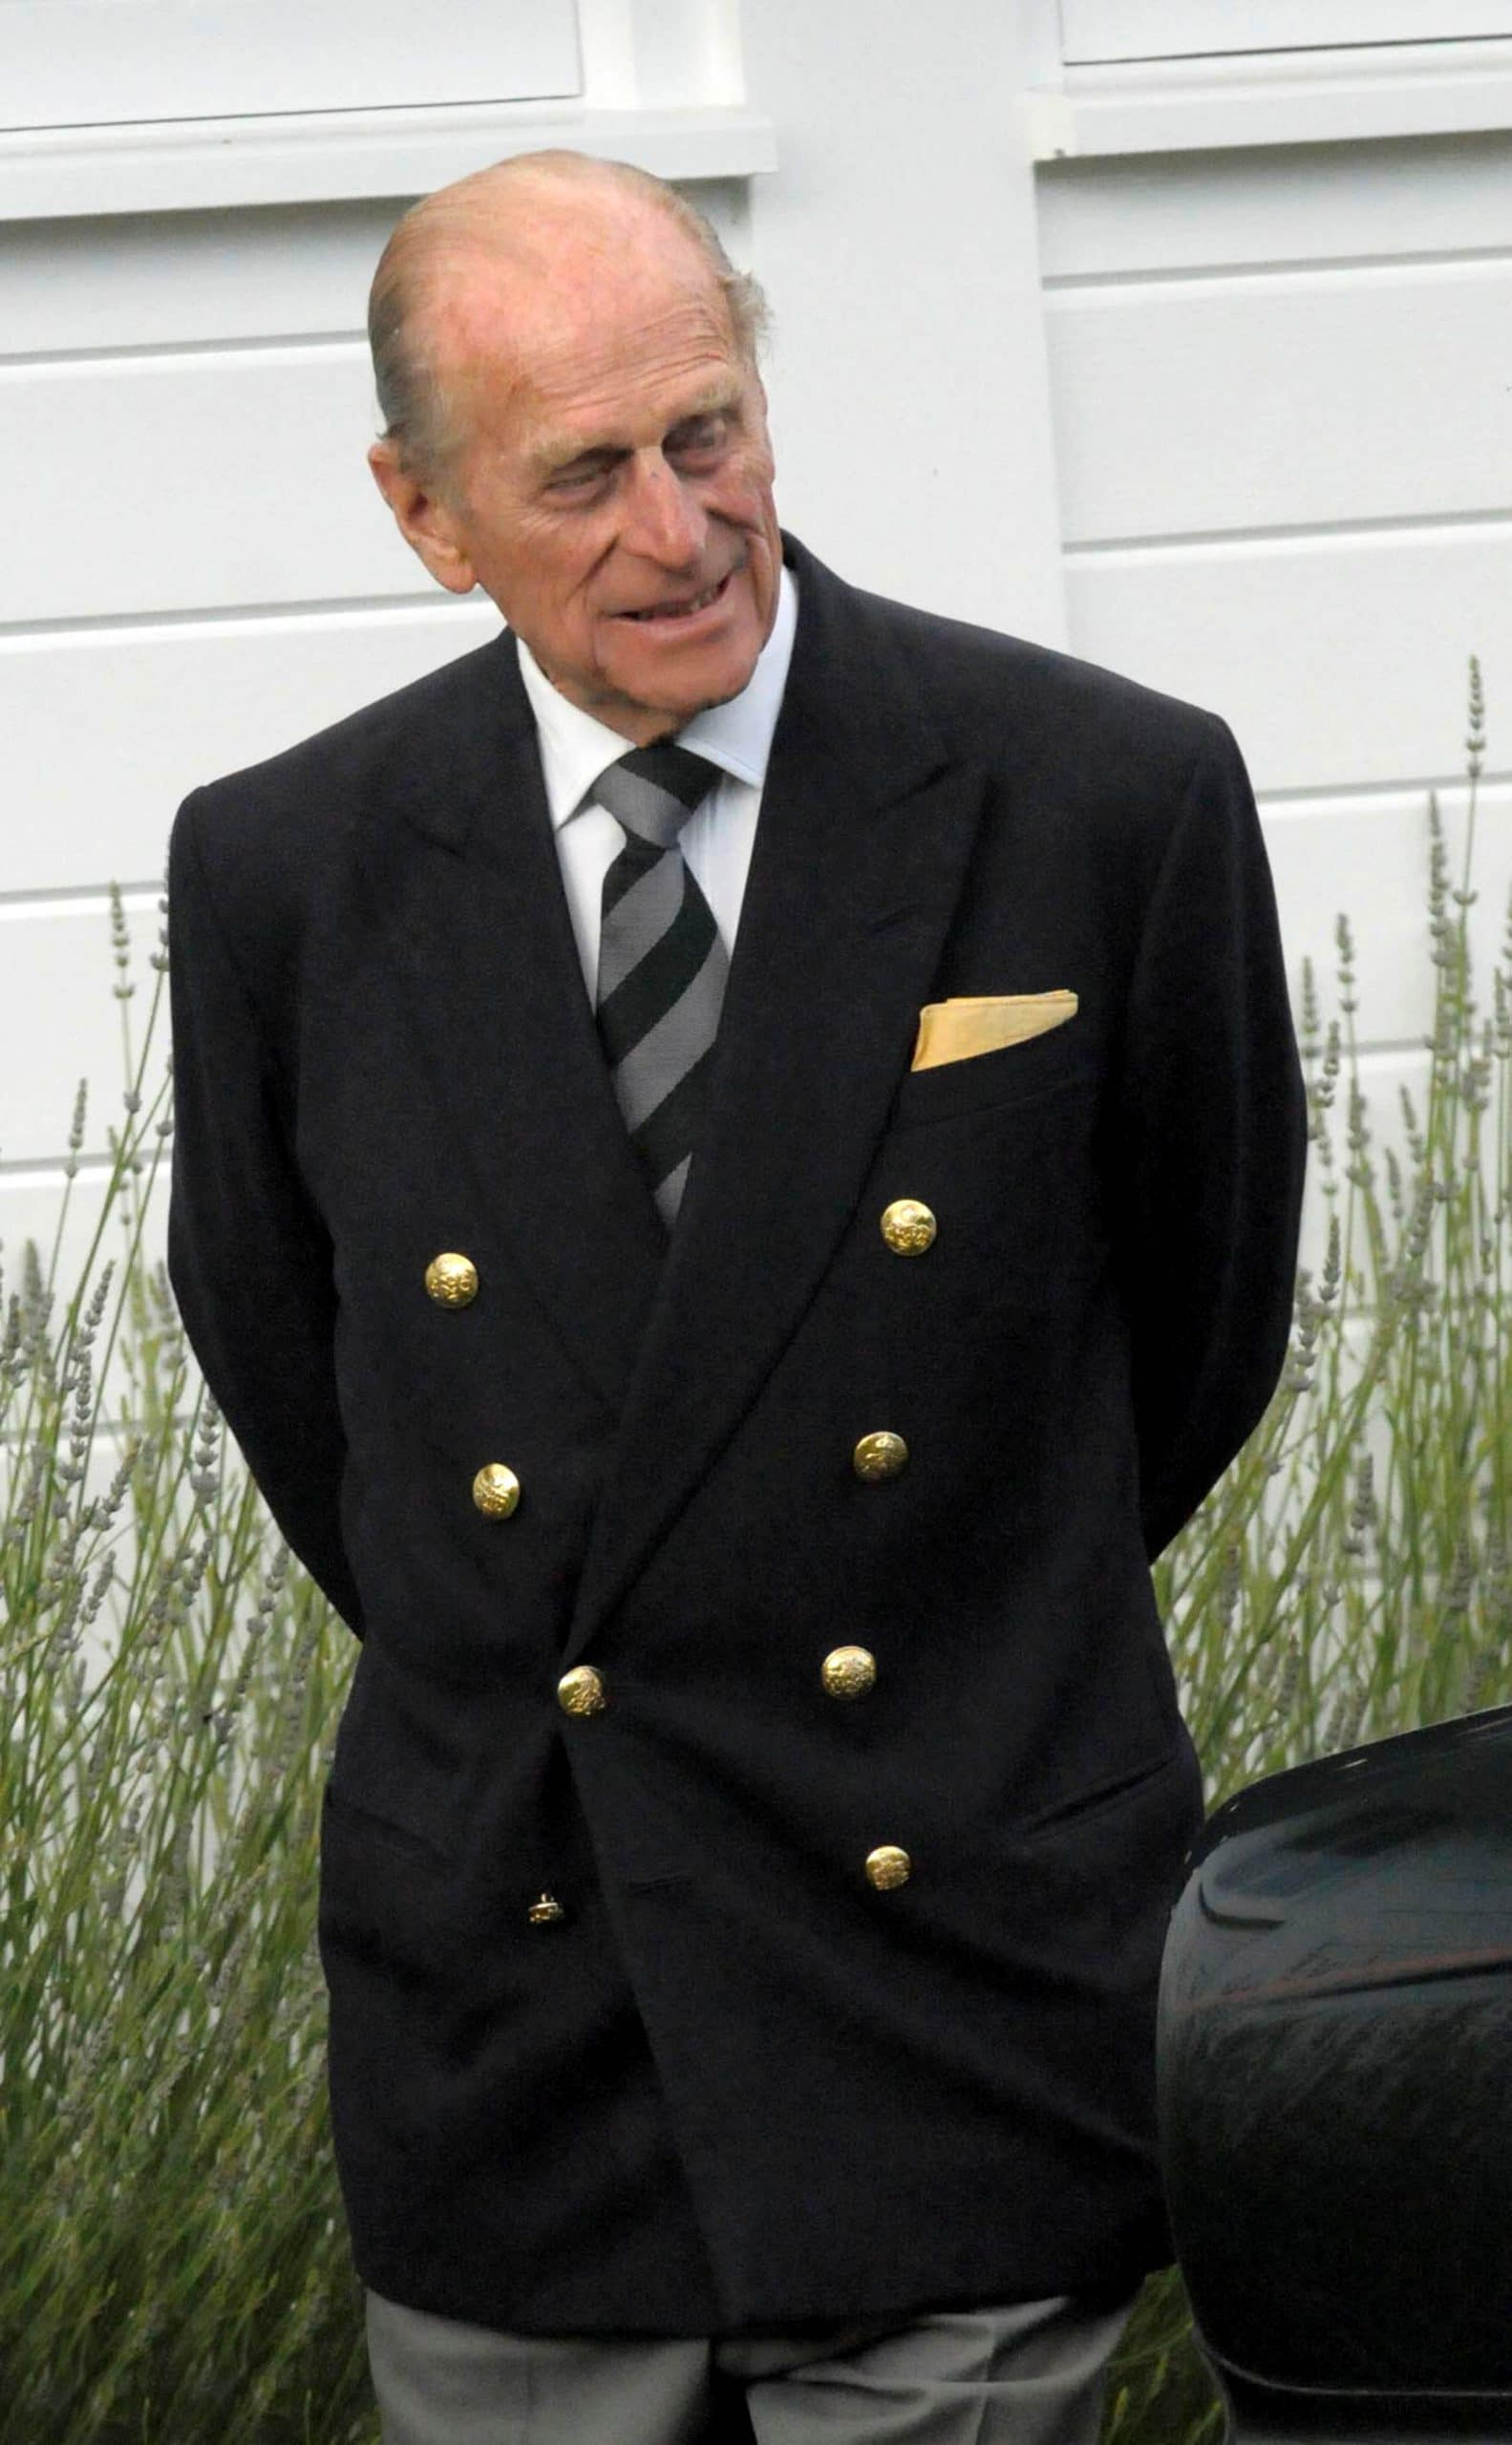 Prince Philip at The Royal Windsor Cup Final